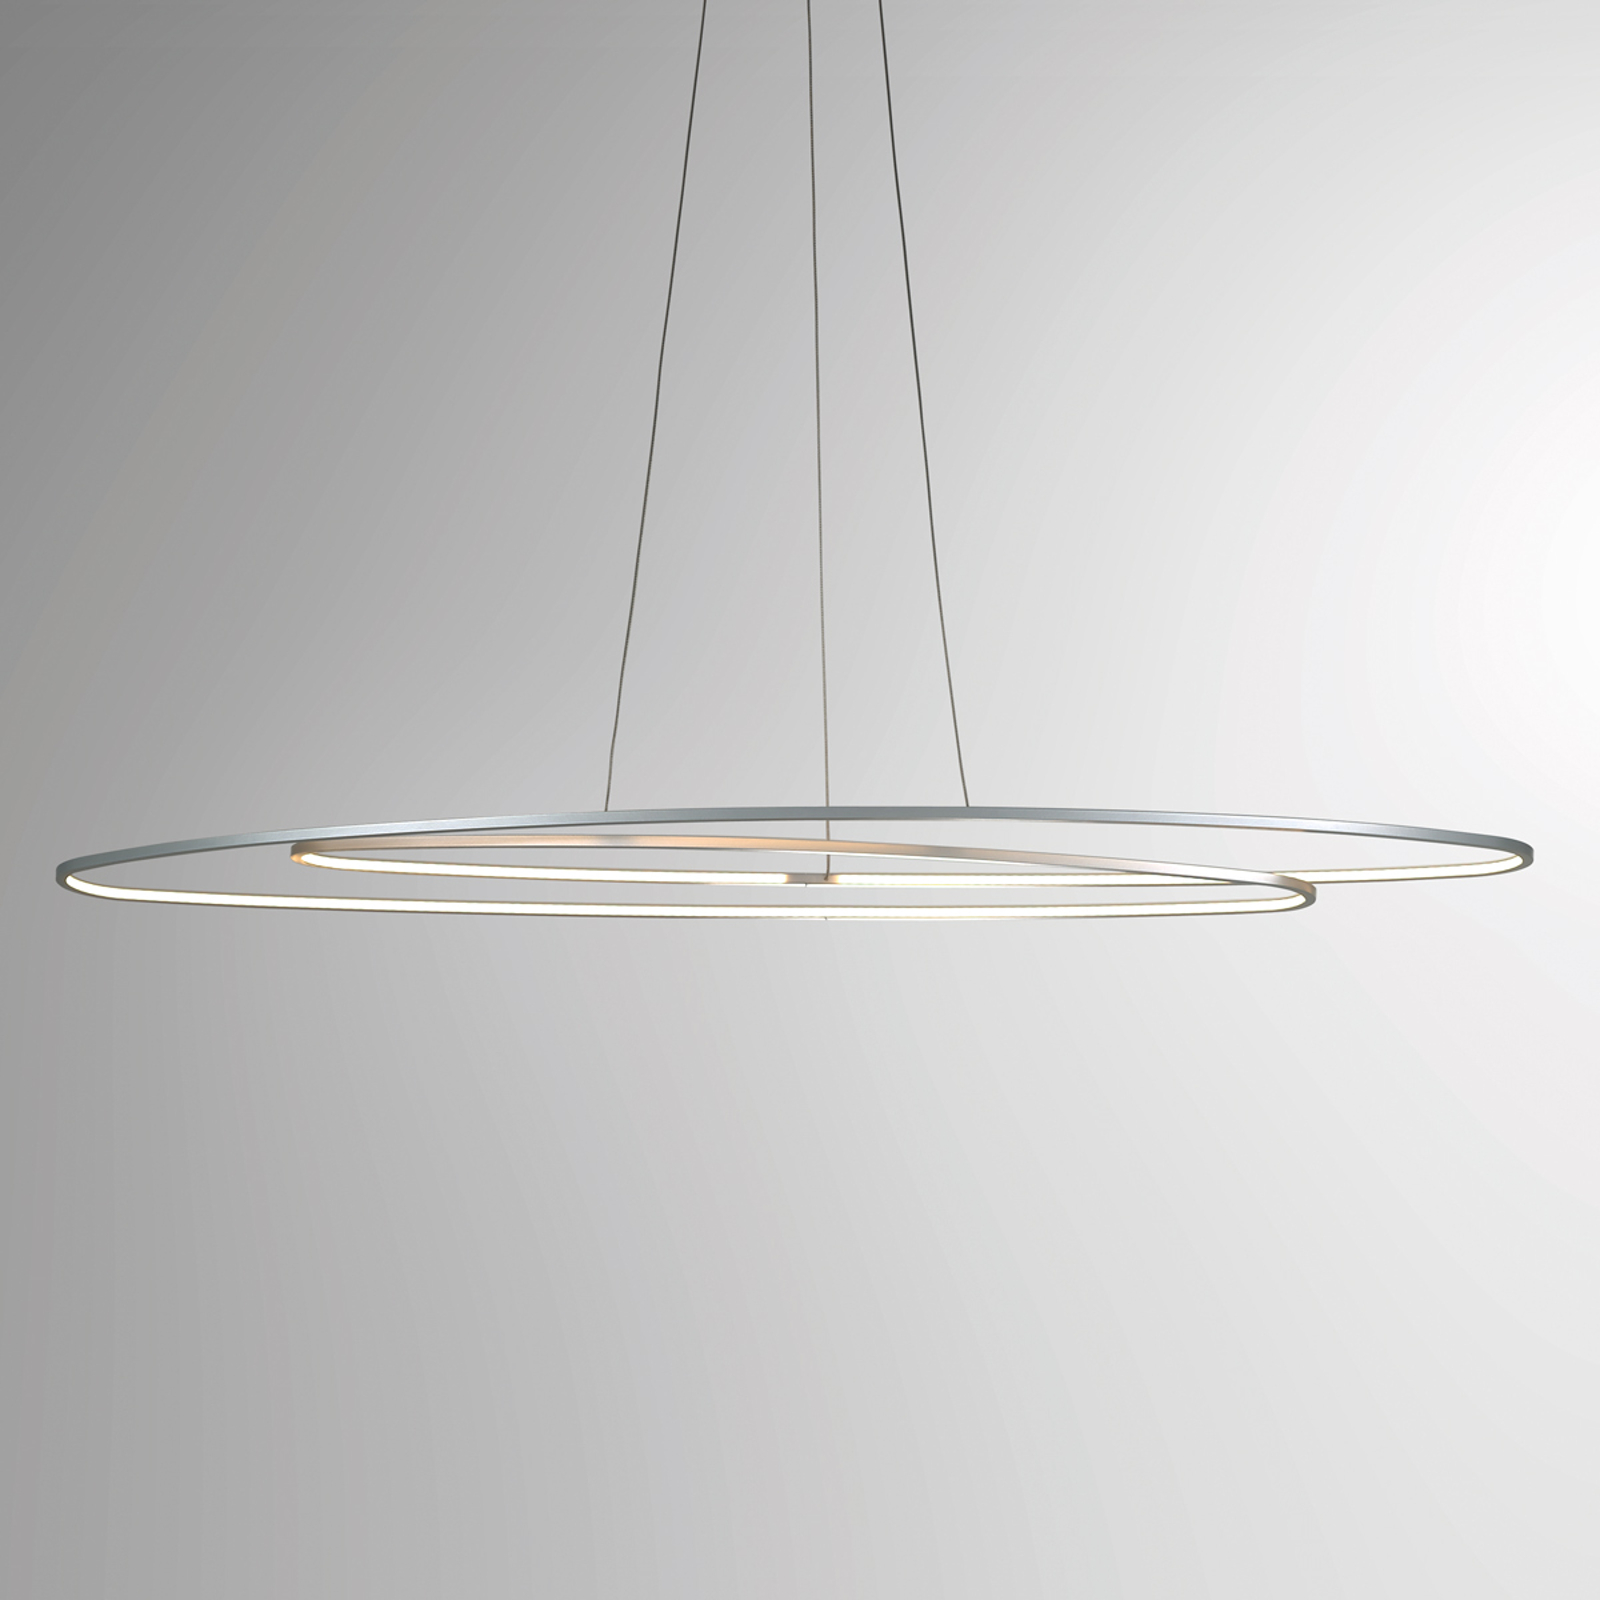 Ovale LED hanglamp Flair, aluminium